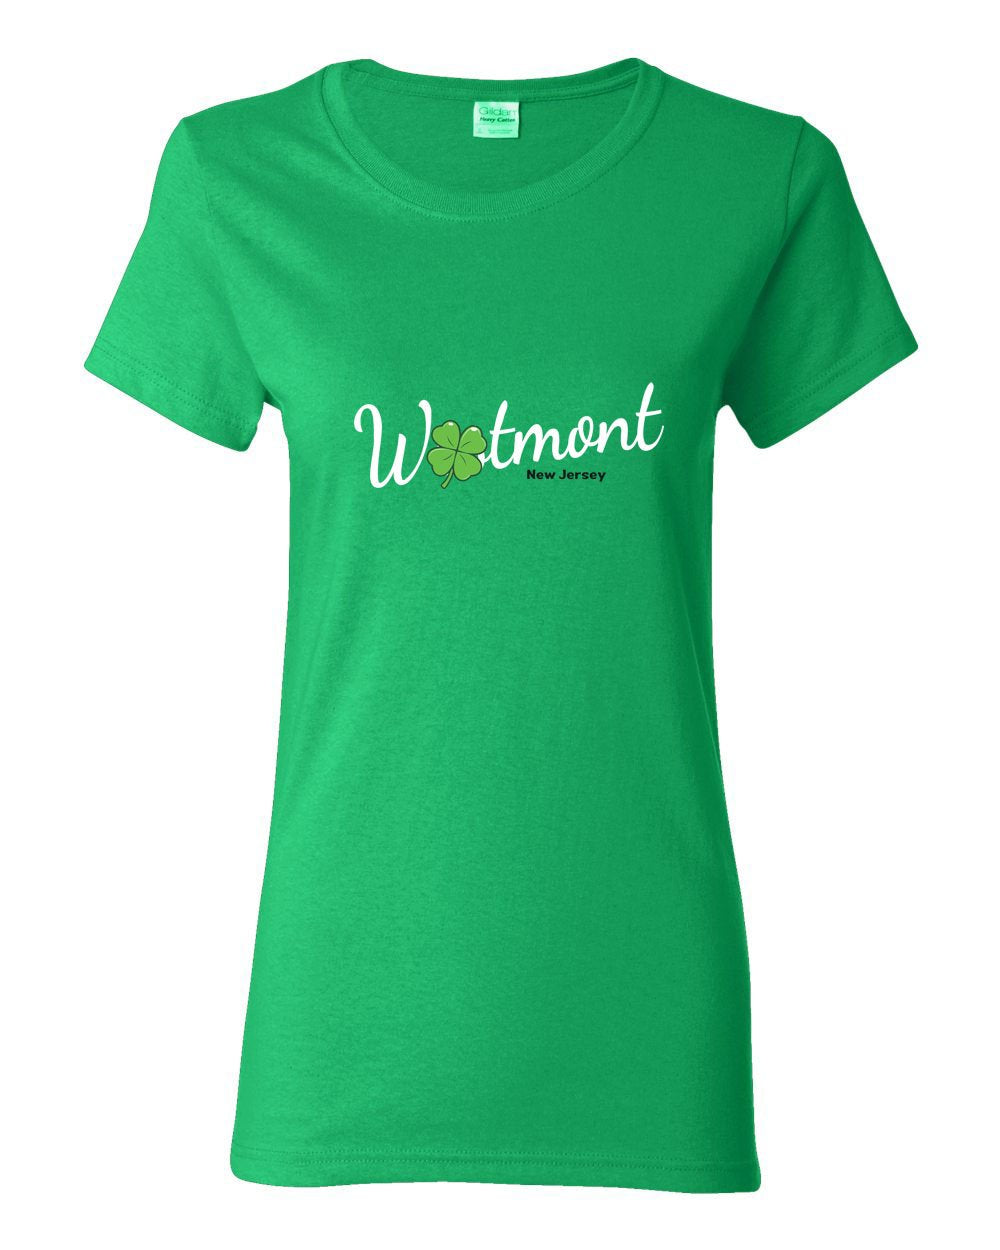 Irish Westmont LADIES Missy-Fit T-Shirt